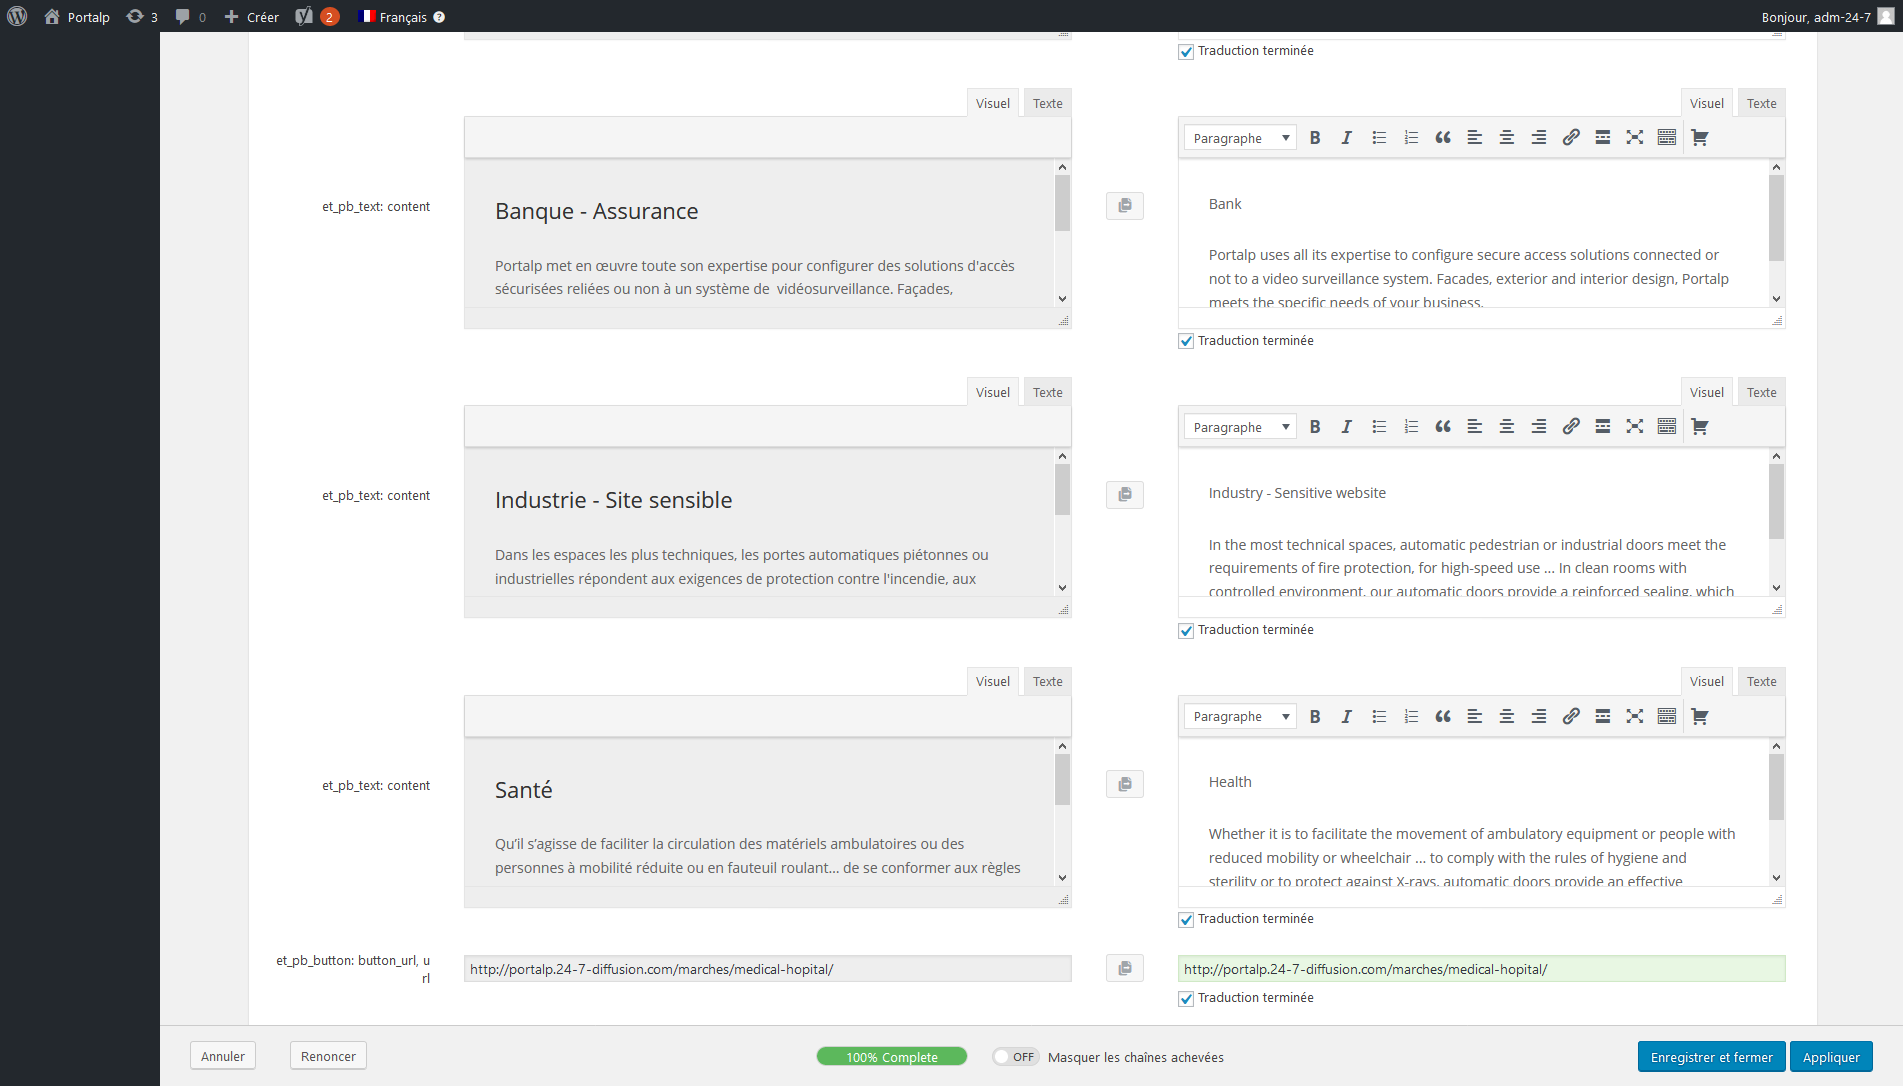 Screenshot_2019-10-03 Traductions ‹ Portalp — WordPress.png